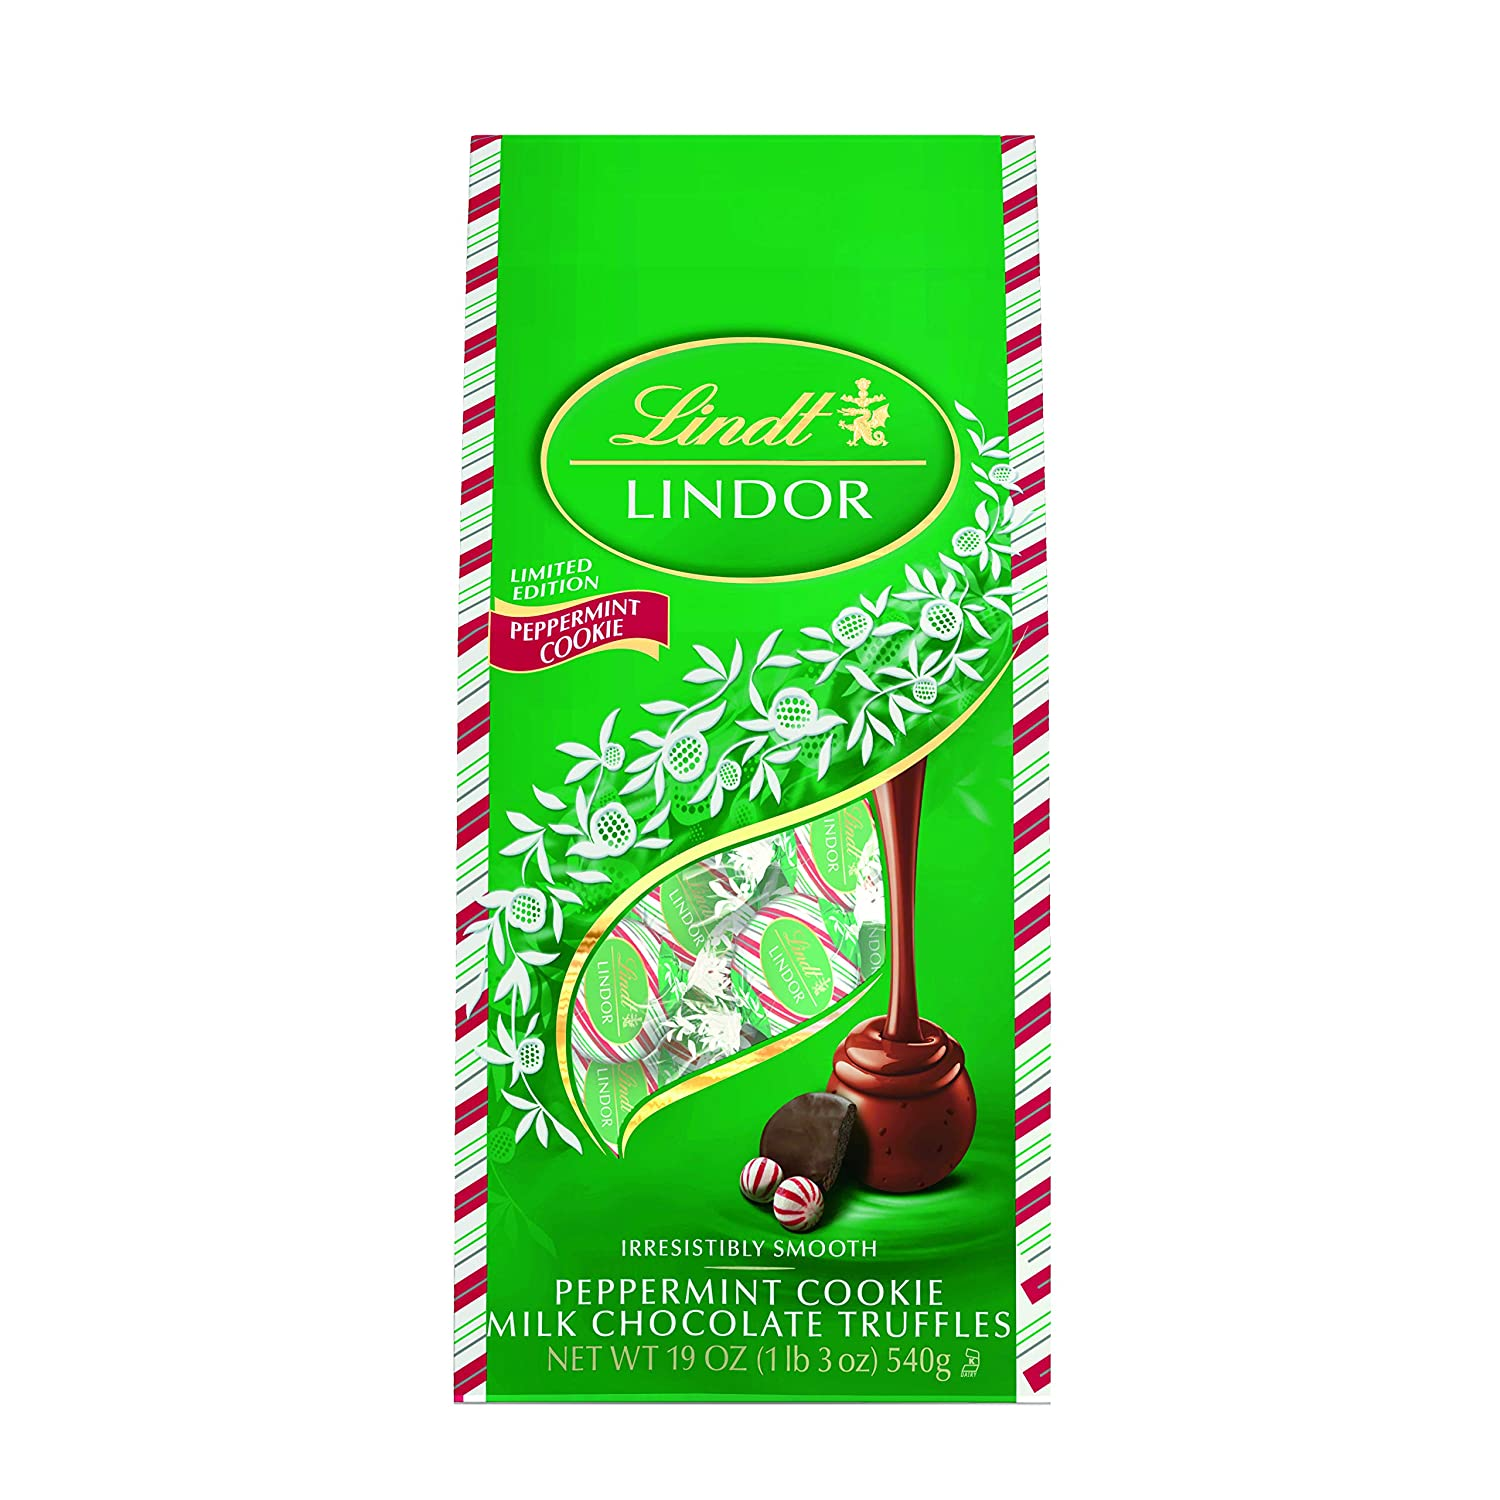 Lindt LINDOR Holiday Milk Peppermint Cookie Truffle Gift Bag, Kosher, Great for Holiday Gifting, 19 Ounce